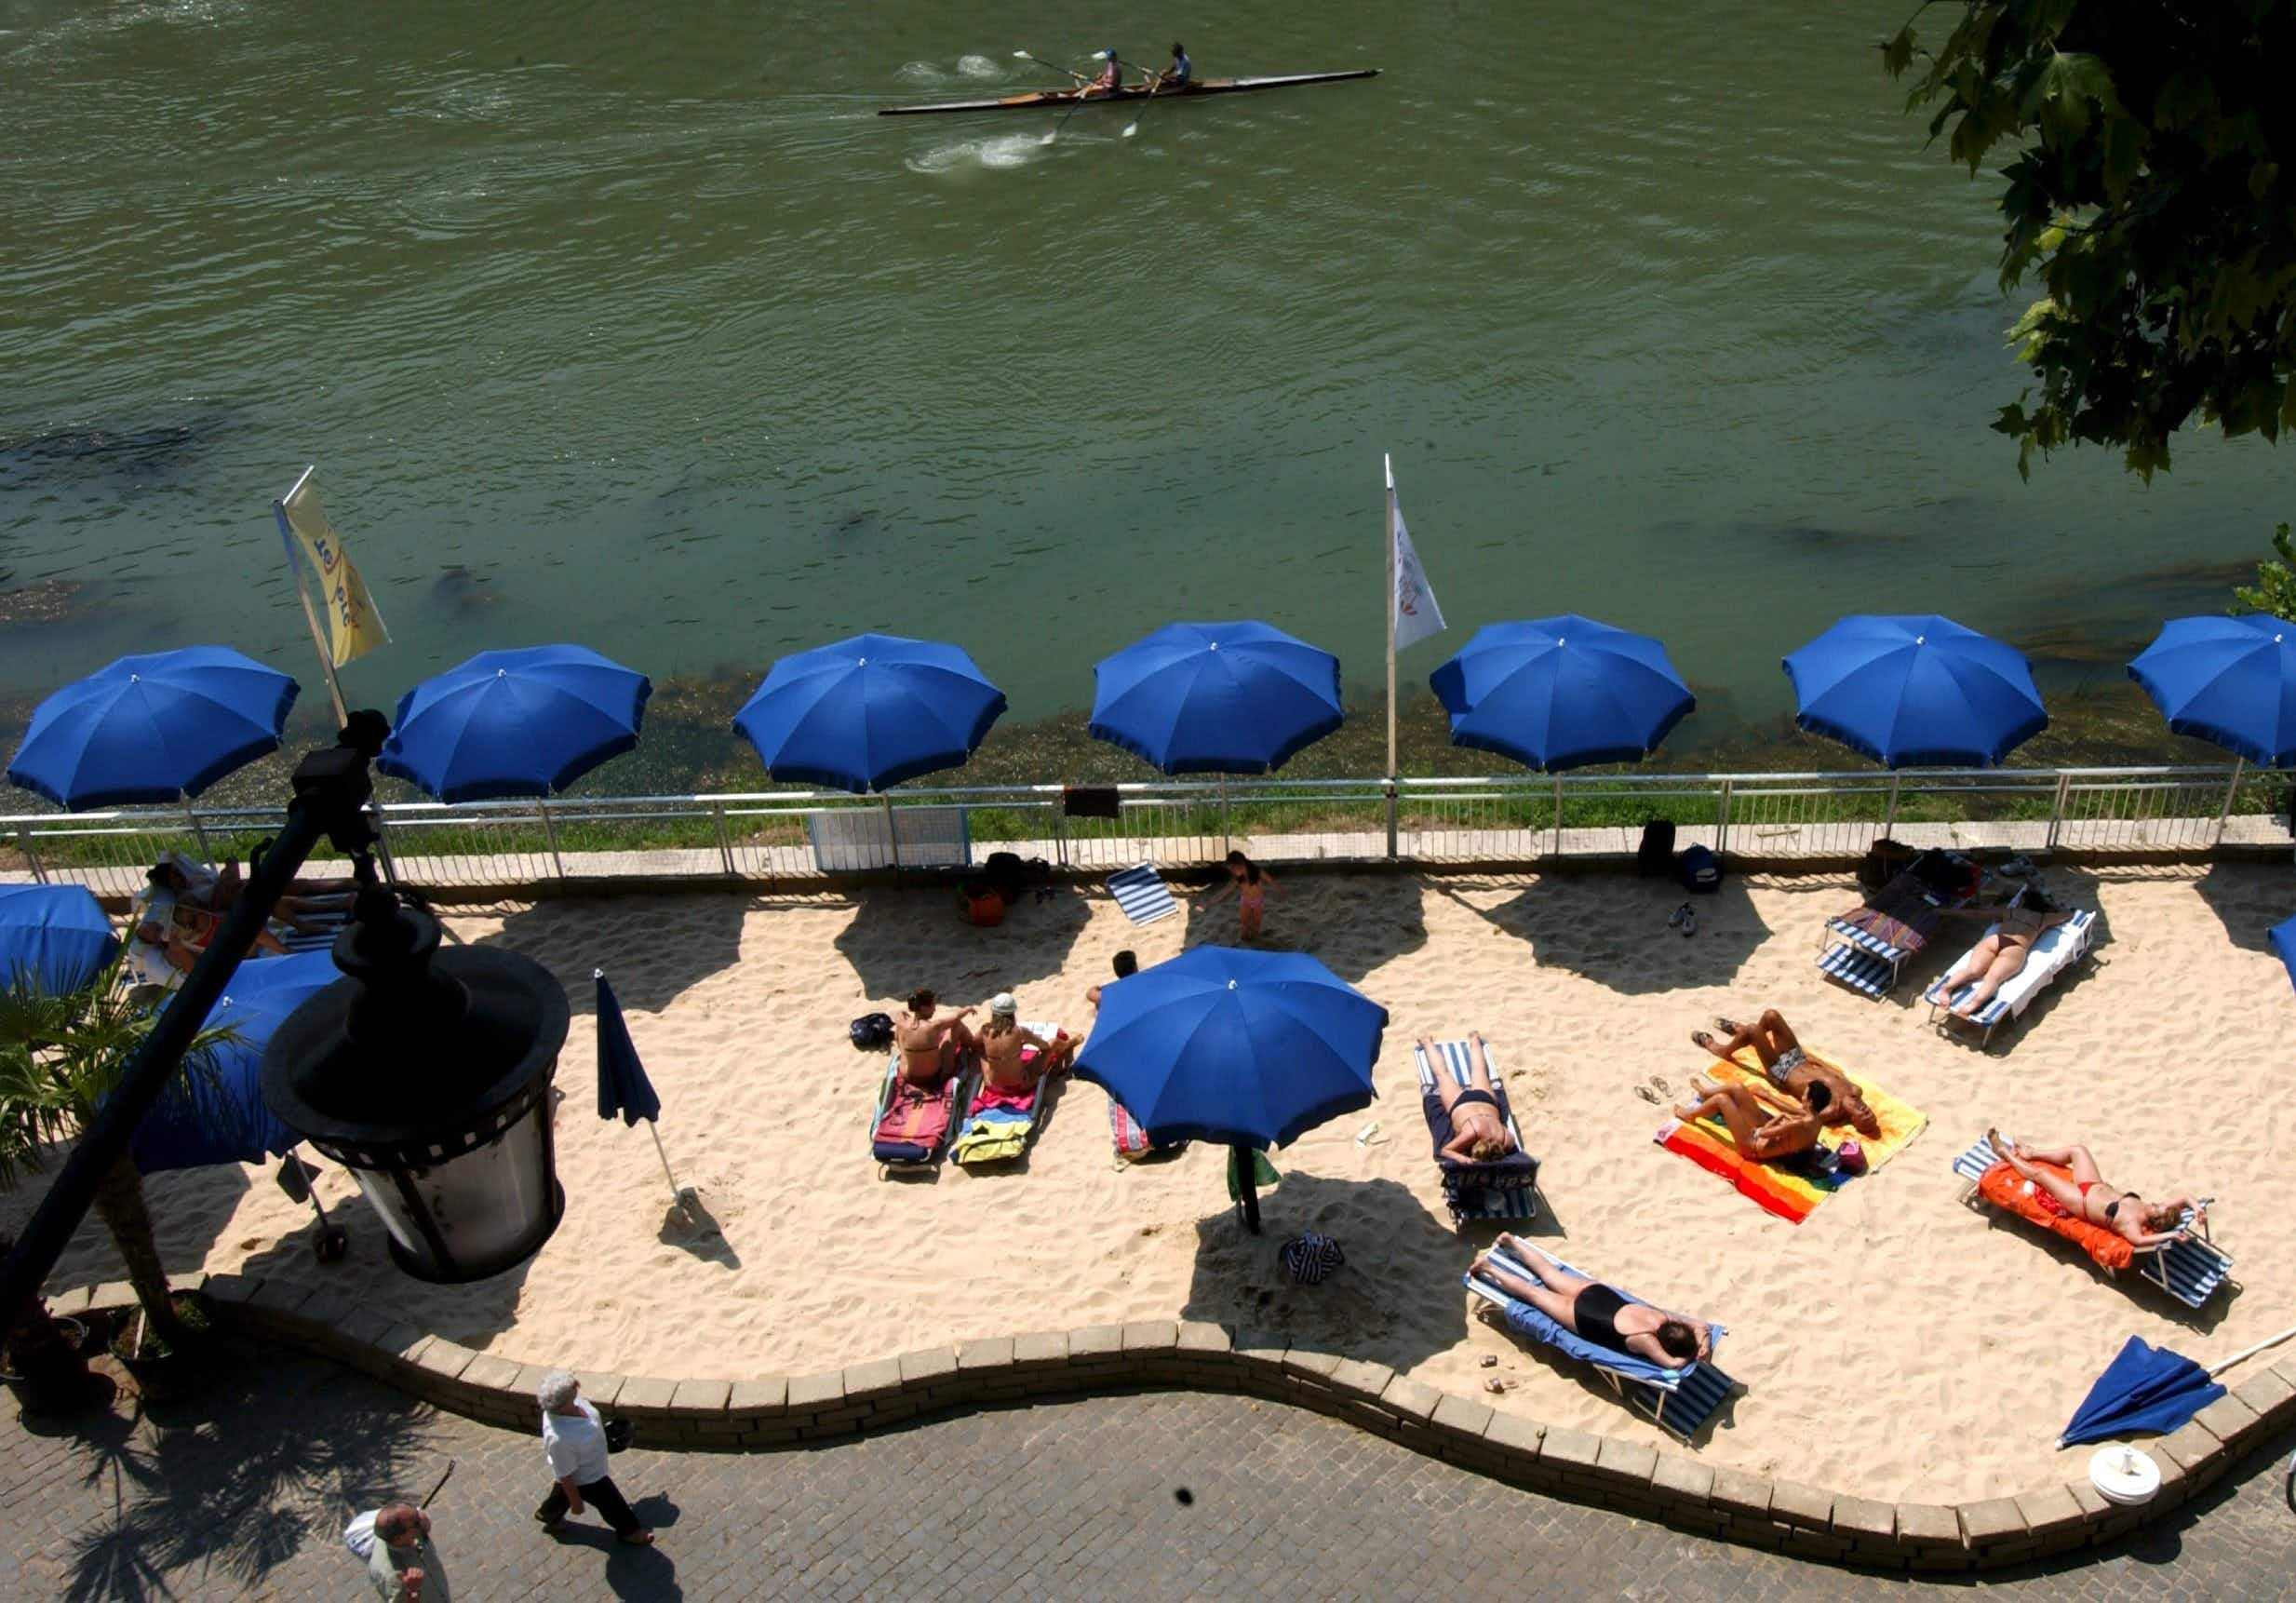 Rome may get a sandy beach on the banks of the Tiber next summer